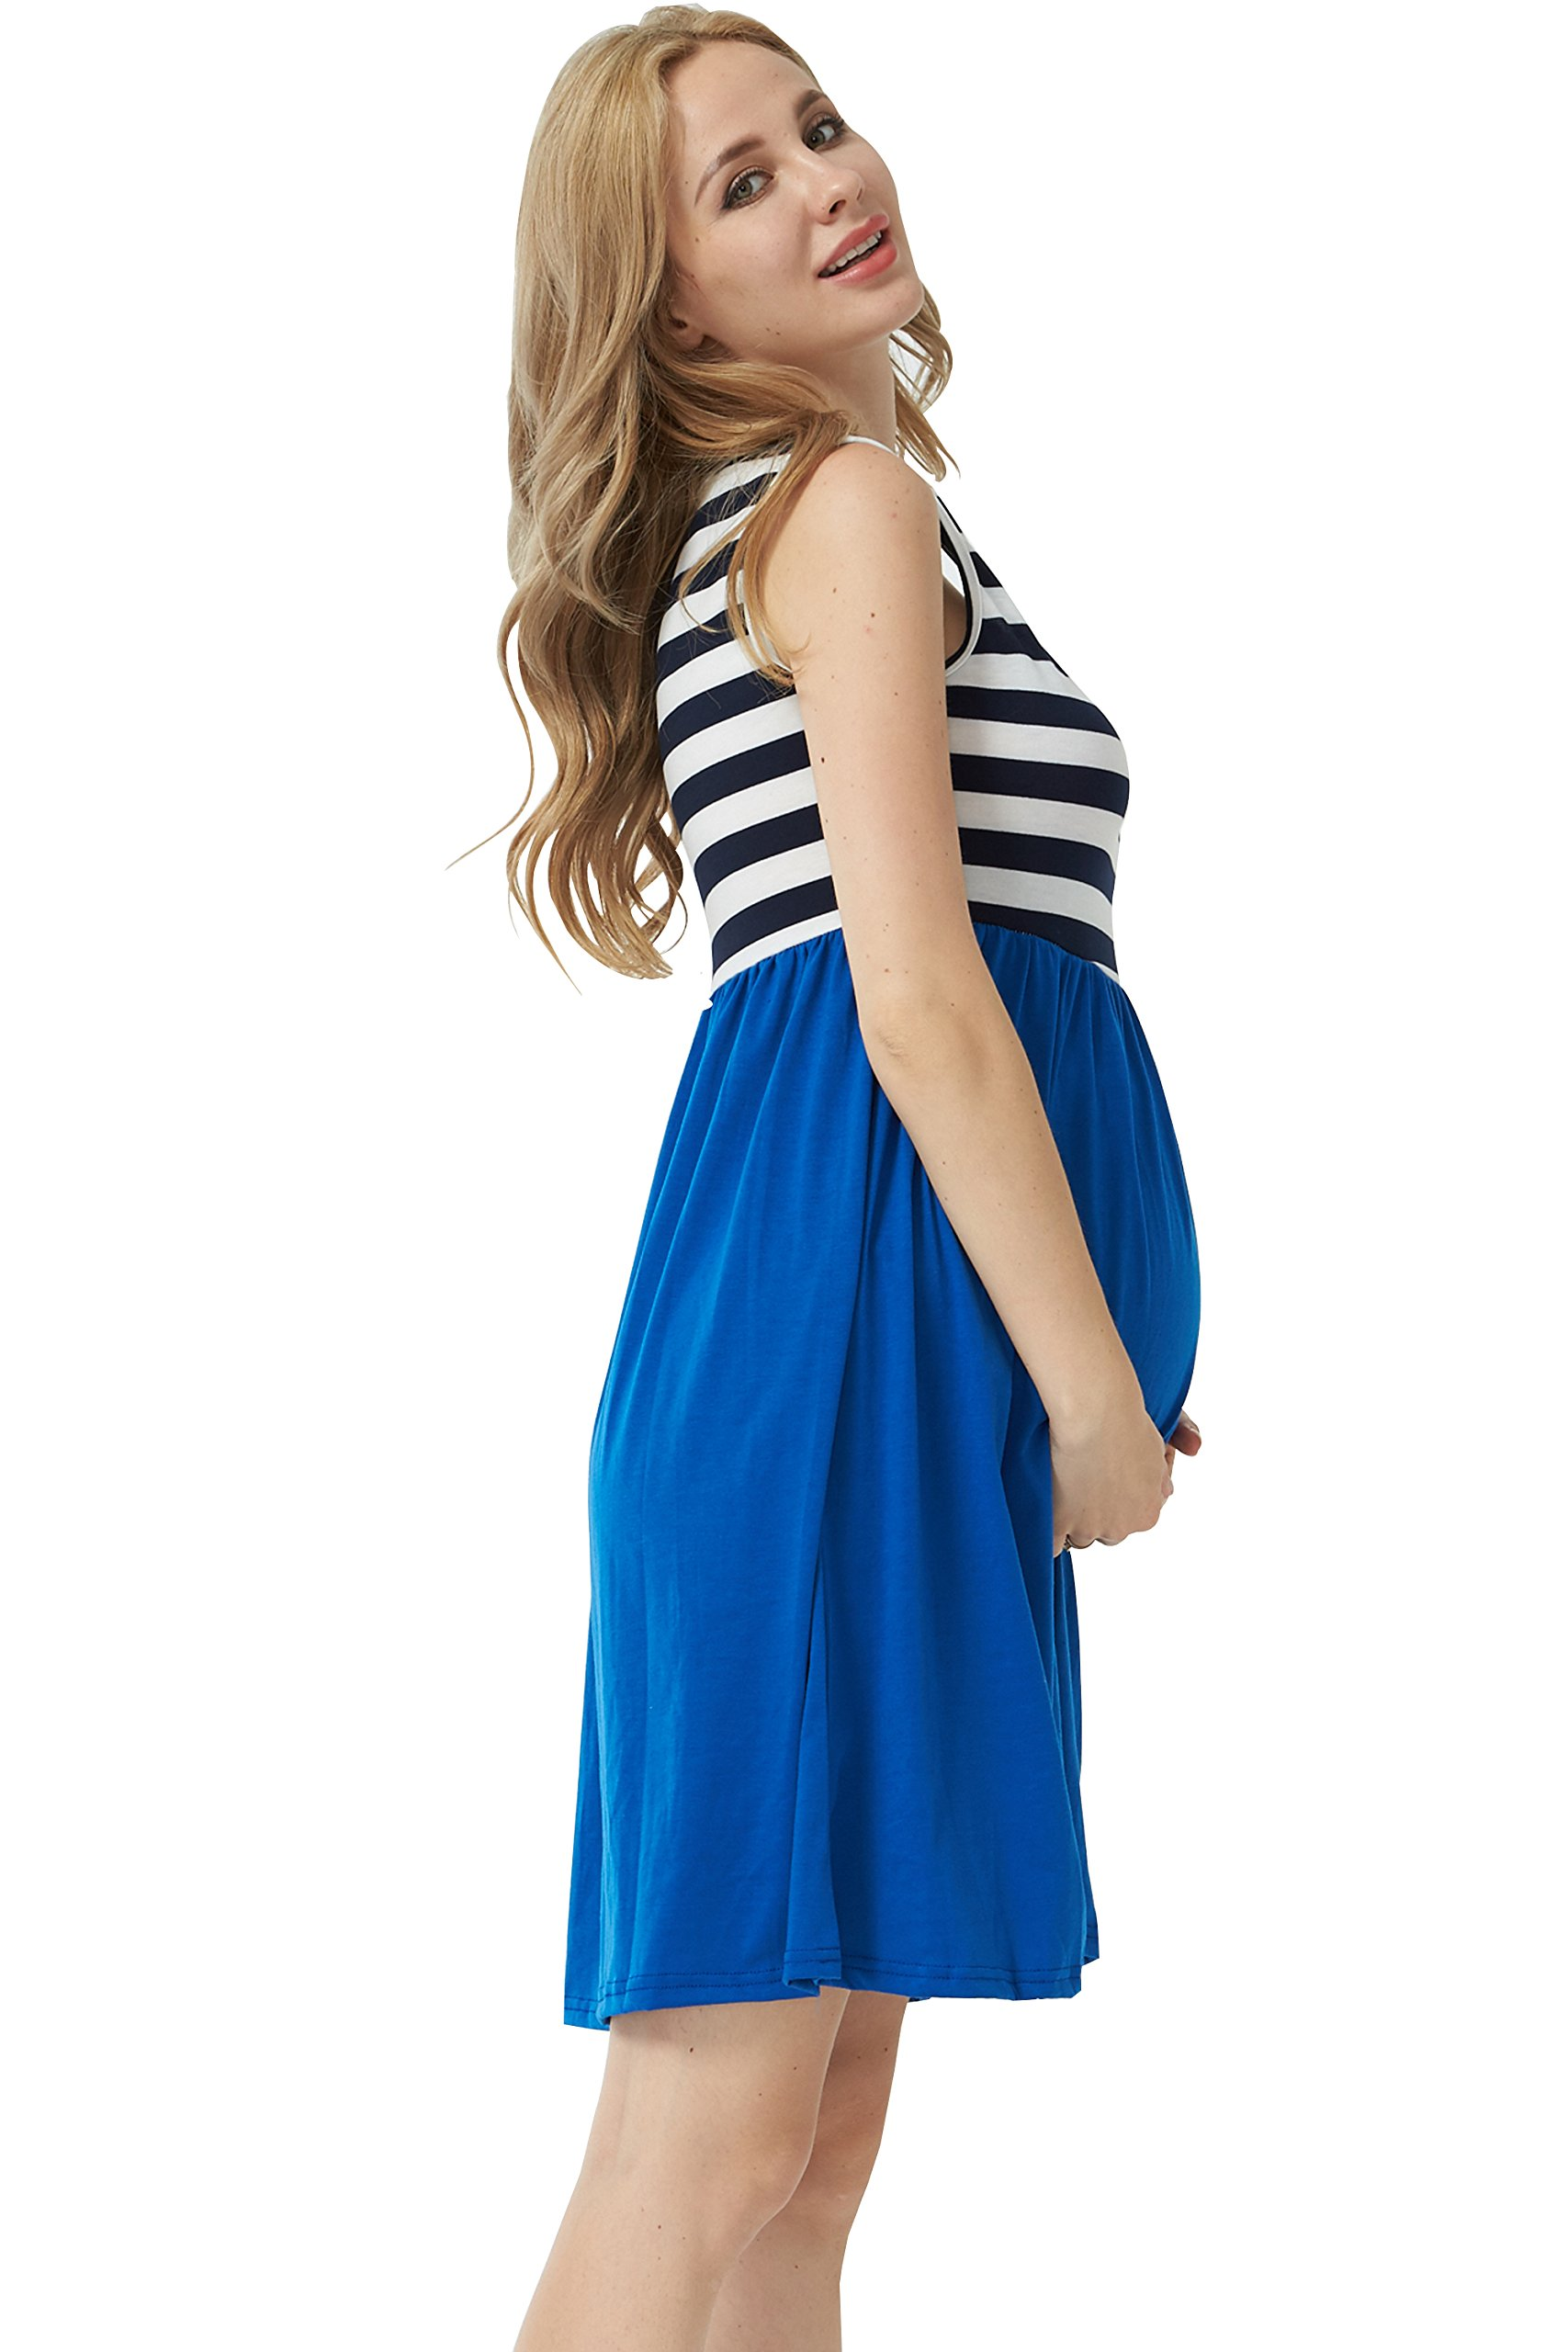 MANNEW Maternity Maxi Dress Pregnancy Tank Tops Knee Length Stitching Color Block Stripe Skirt (Blue, X-Large) by MANNEW (Image #5)